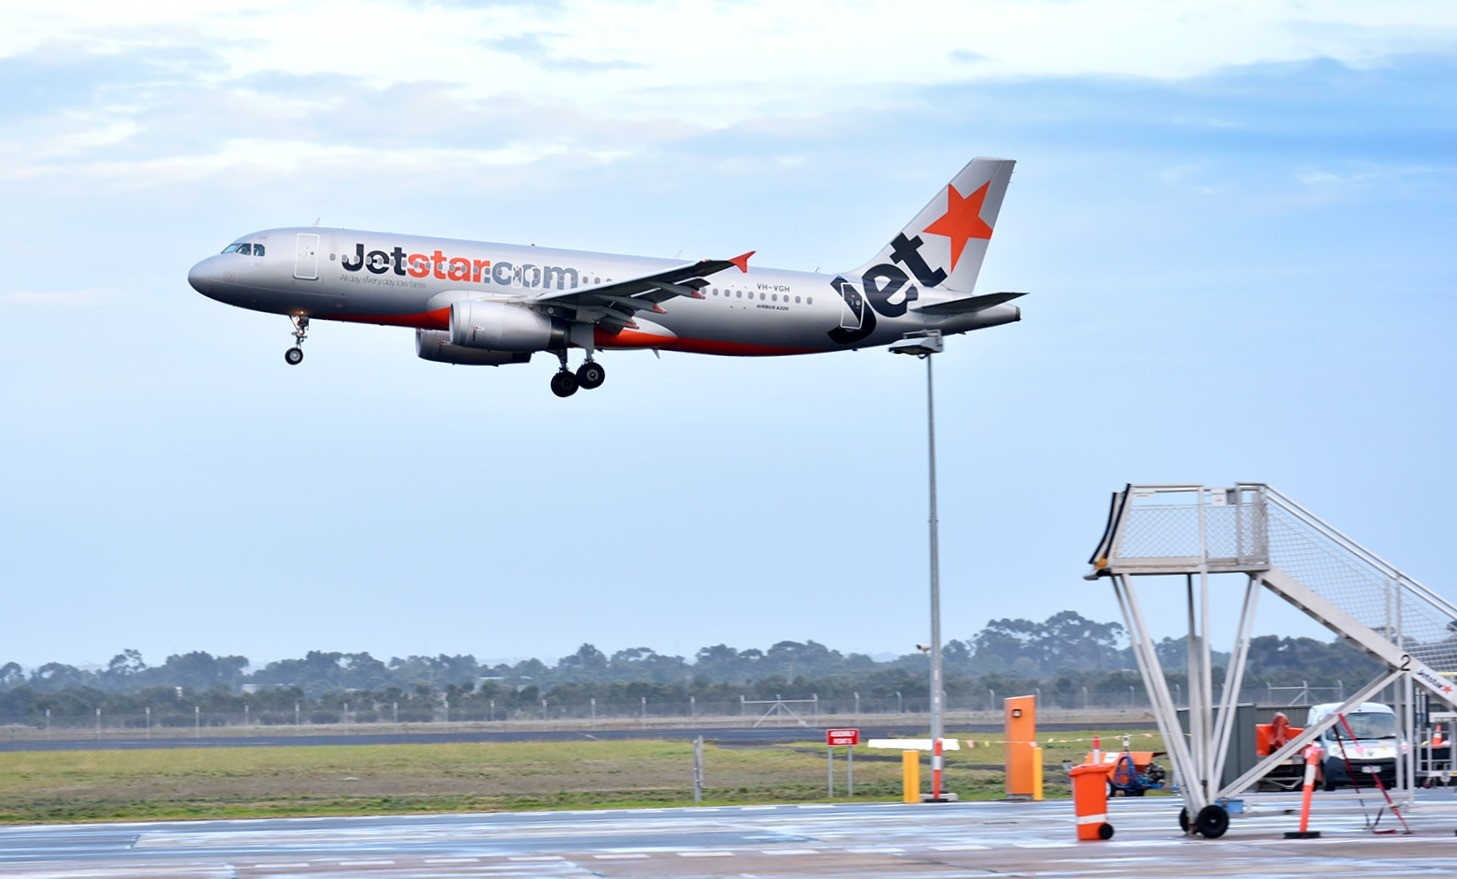 Jetstar A320 departing Avalon Airport 2